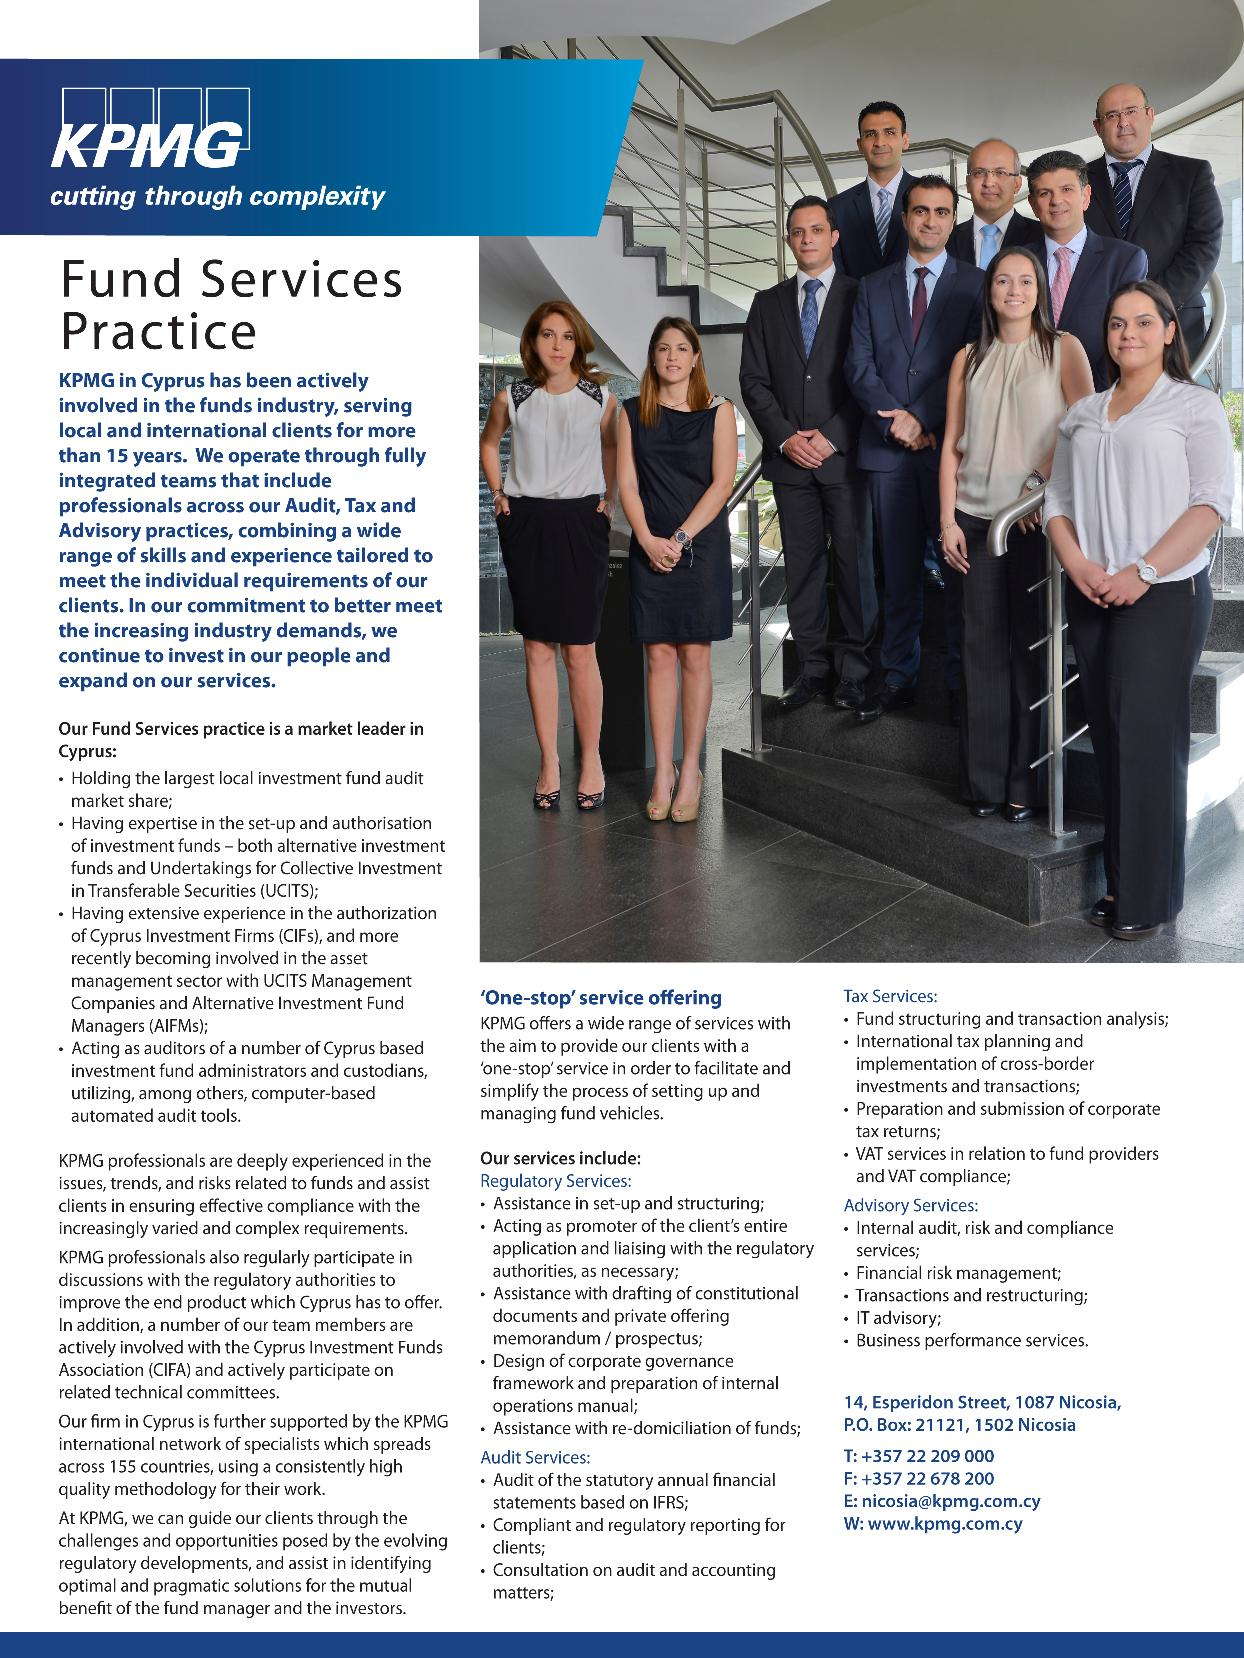 Fund Services Practice: Gold Parousiasi